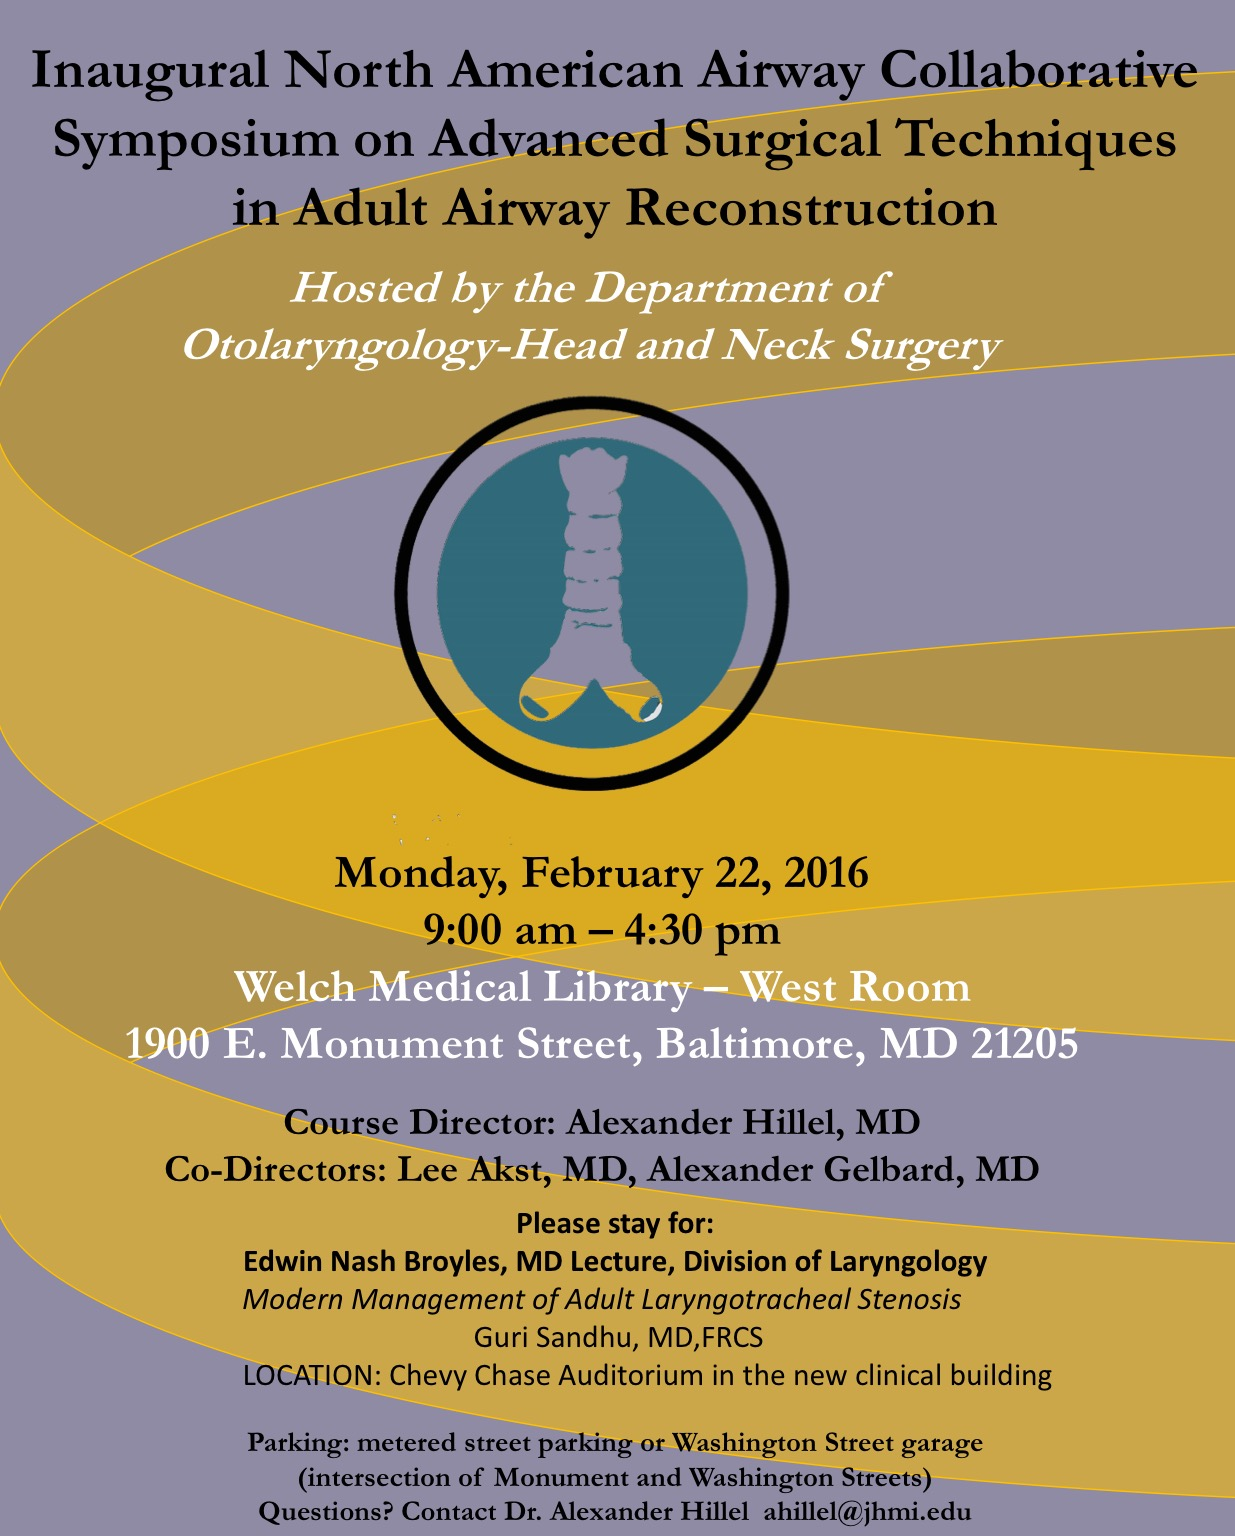 welcome to the North American Airway Collaborative